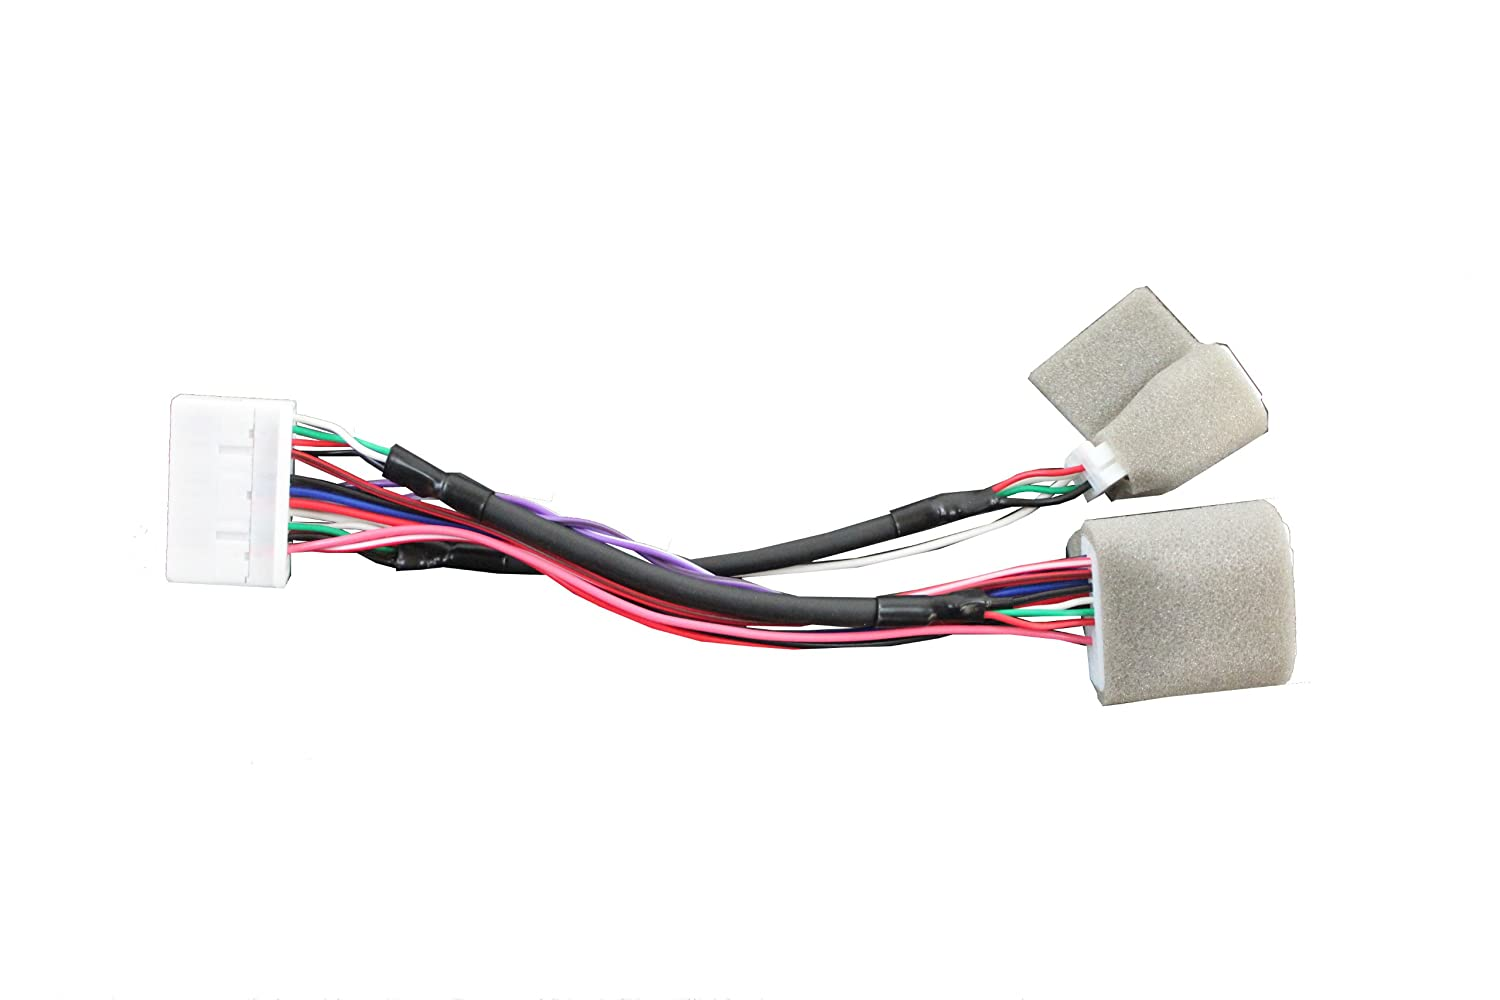 71zo9uDuycL._SL1500_ amazon com genuine scion accessories pt546 00120 ch wire harness 2014 Scion tC Radio Rear at webbmarketing.co